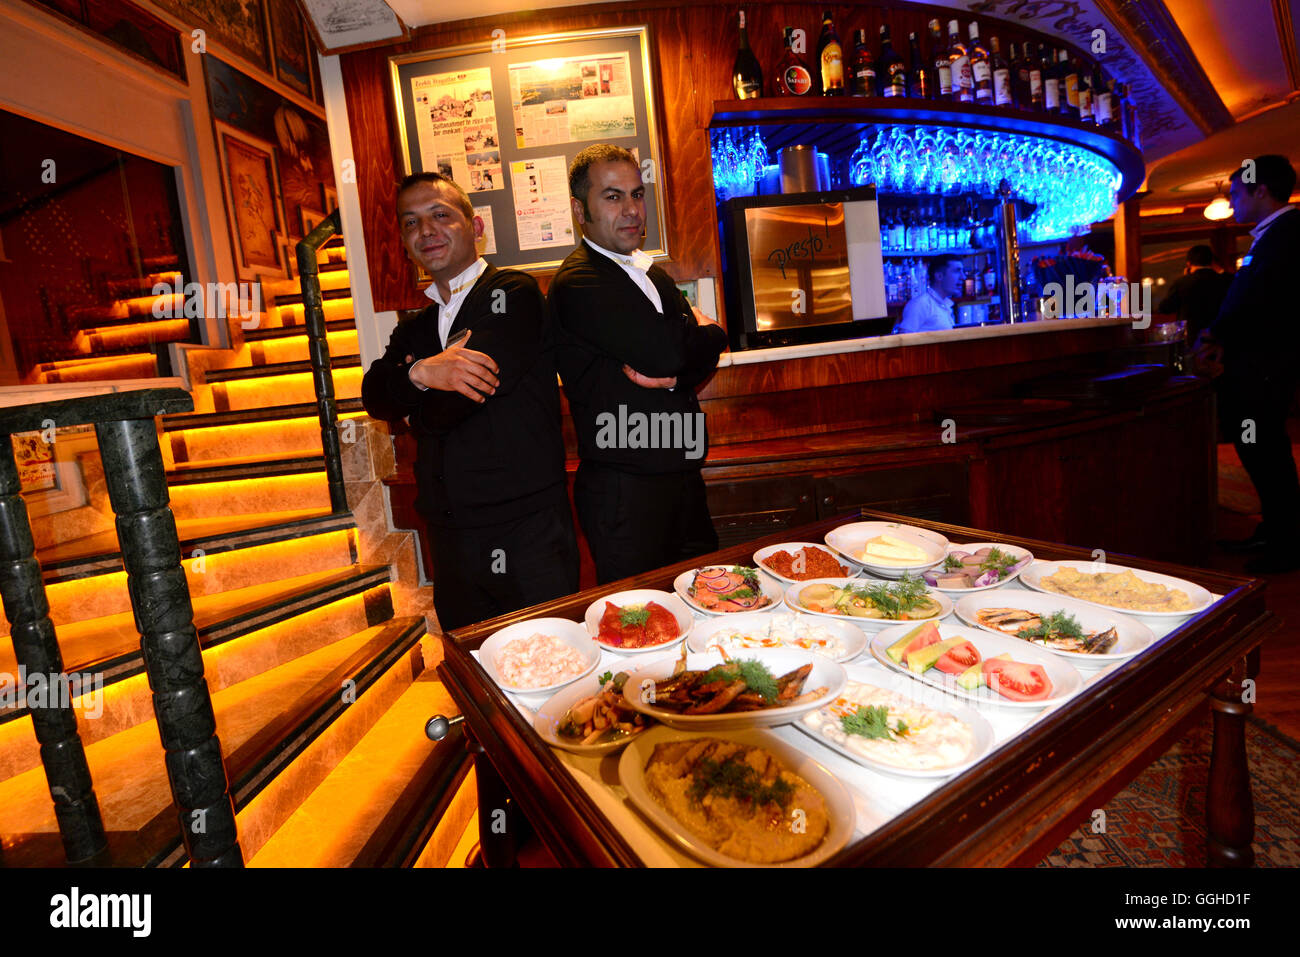 Waiters serving Meze in a hotel restaurant, Sultanahmet, Istanbul, Turkey - Stock Image